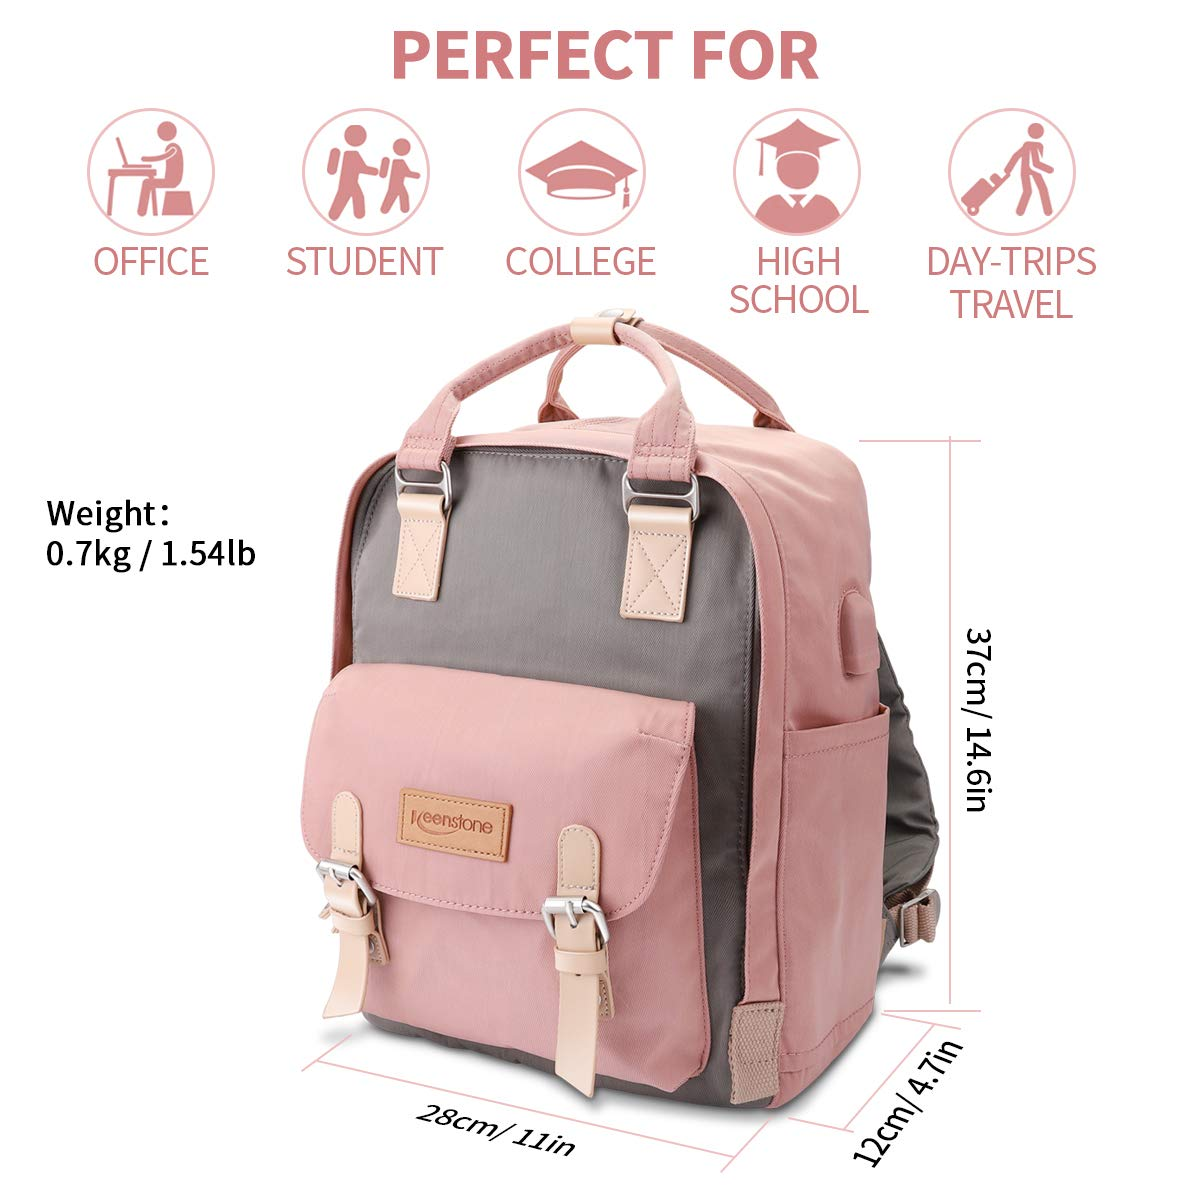 Casual Laptop Backpack with USB Charging Port,Wrinkle-Free Water Resistant Nylon College School Bookbag Vintage Travel Computer Backpack for Women,Fits Under 14\' Laptop for School, Work, Outdoor